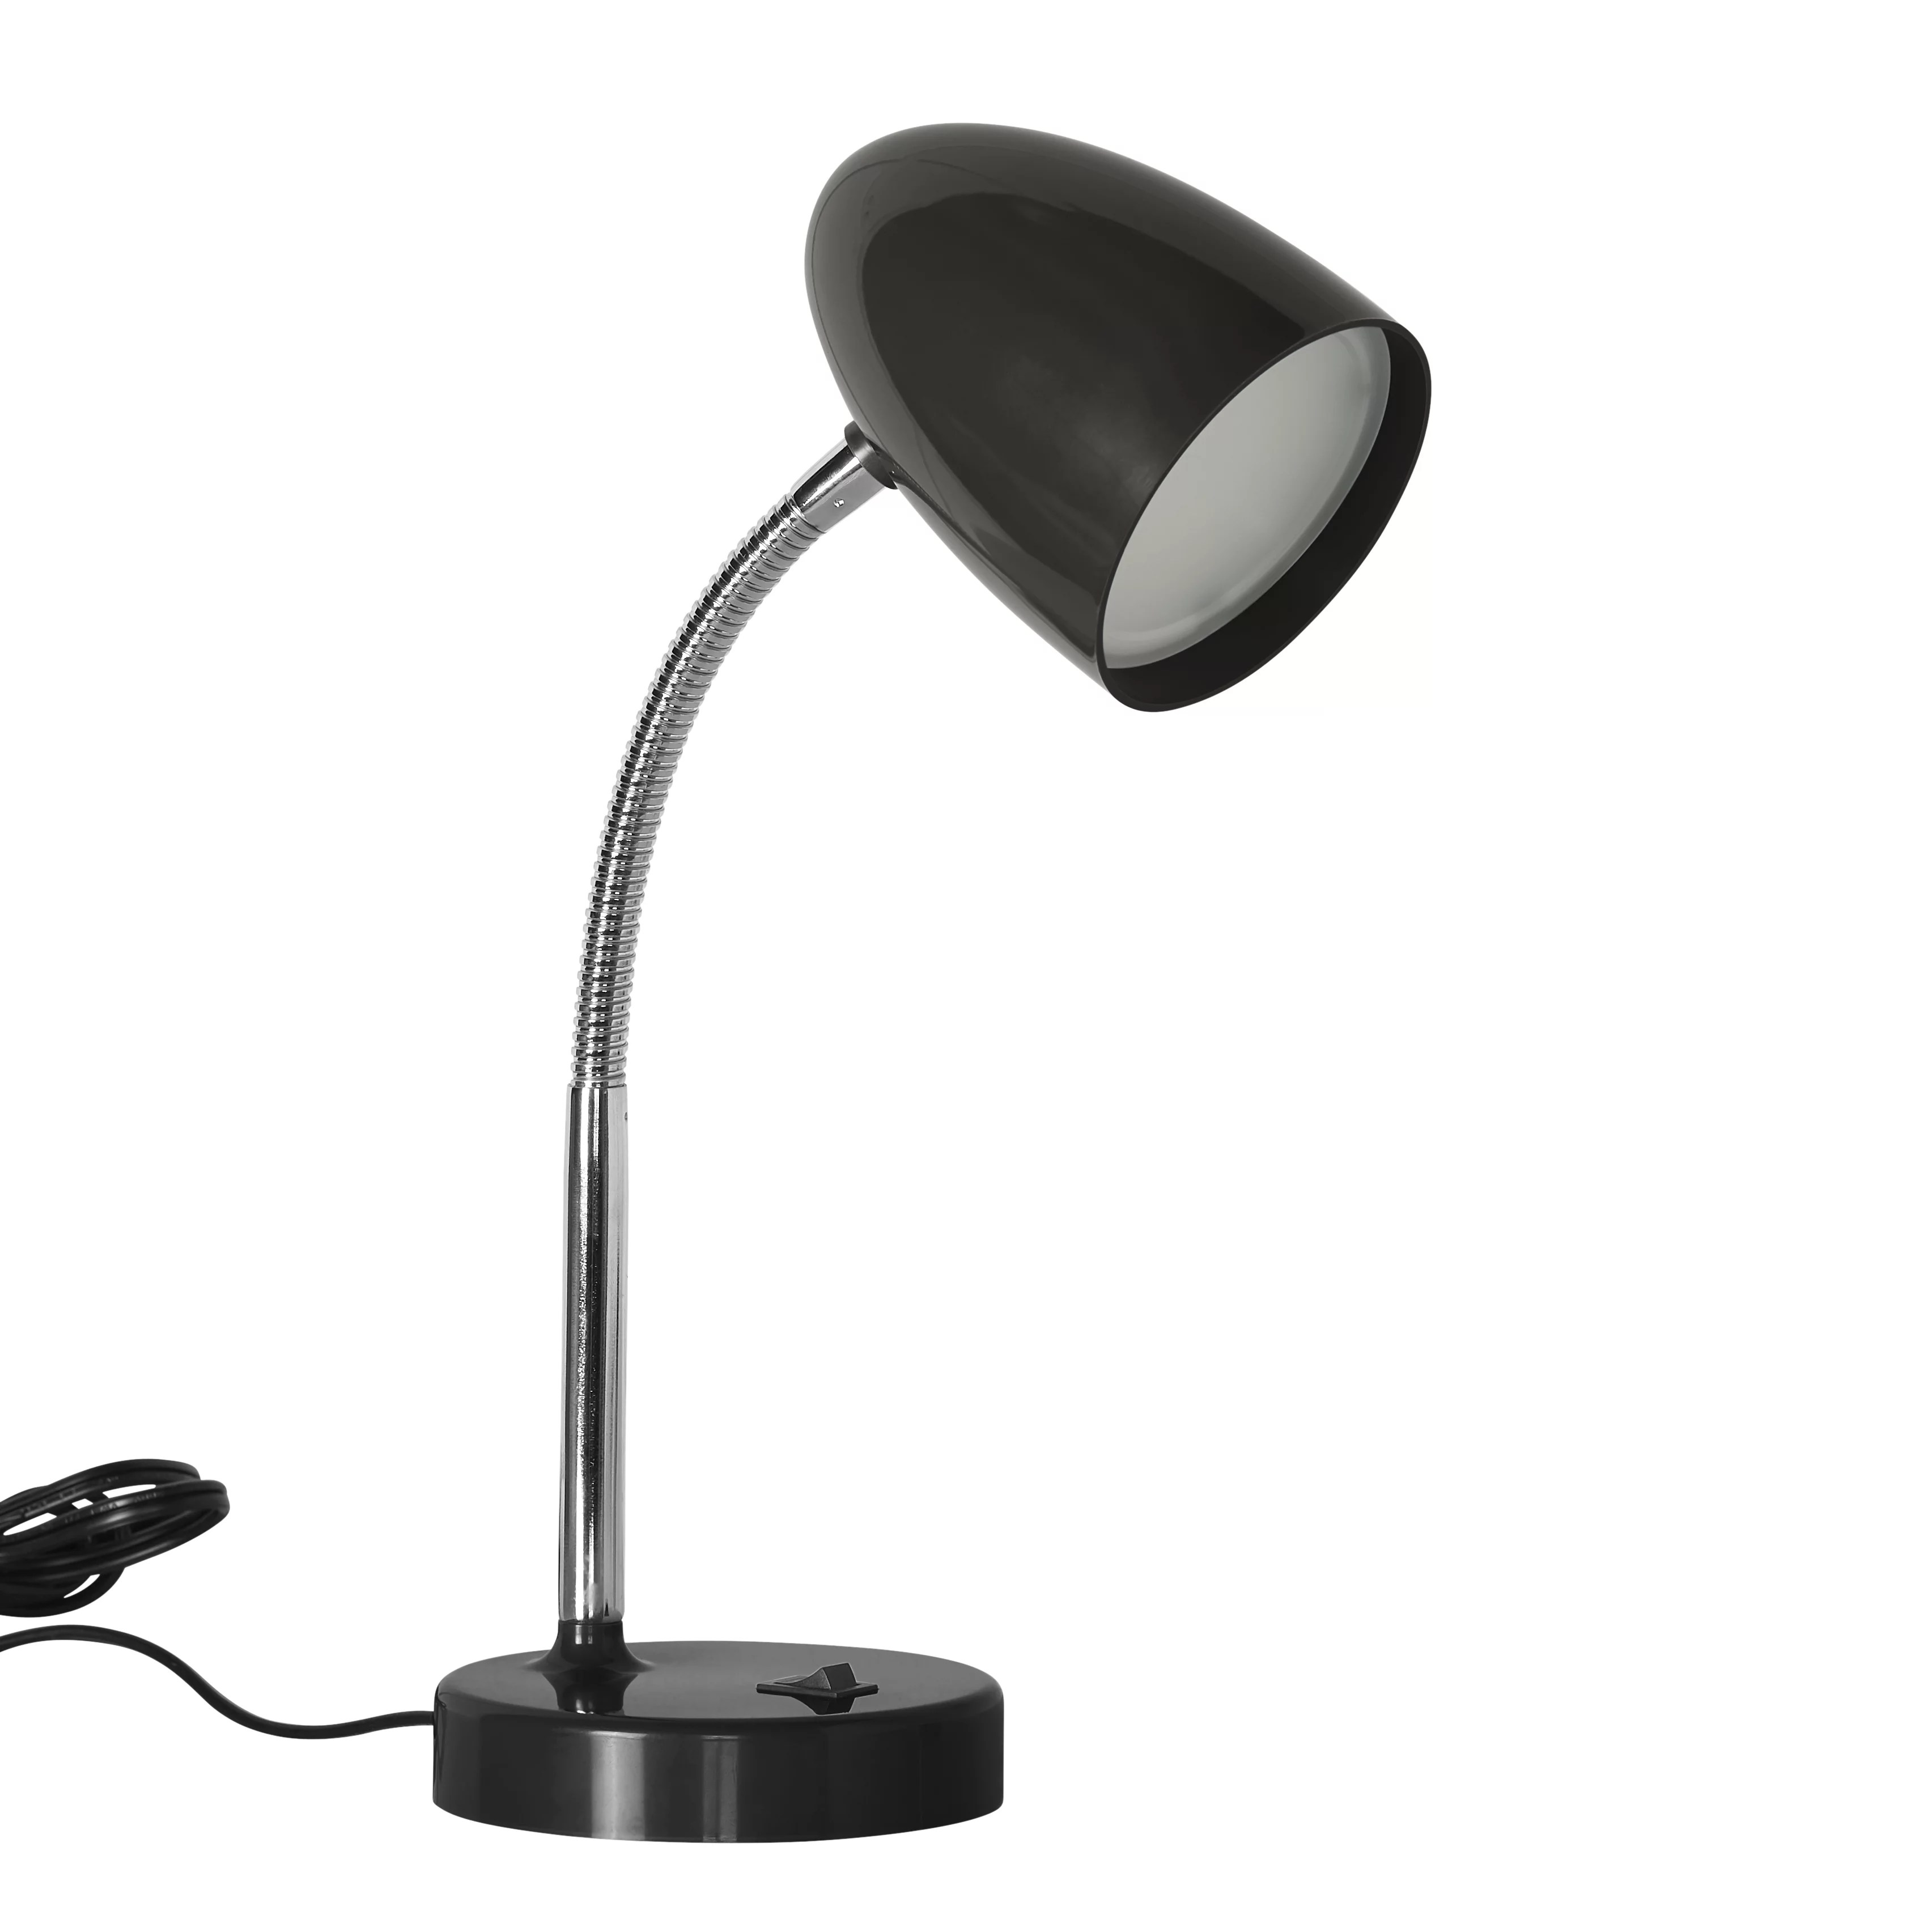 Desk Lamp Mainstays 3 5 Watt Led Desk Lamp Flexible Gooseneck Gold